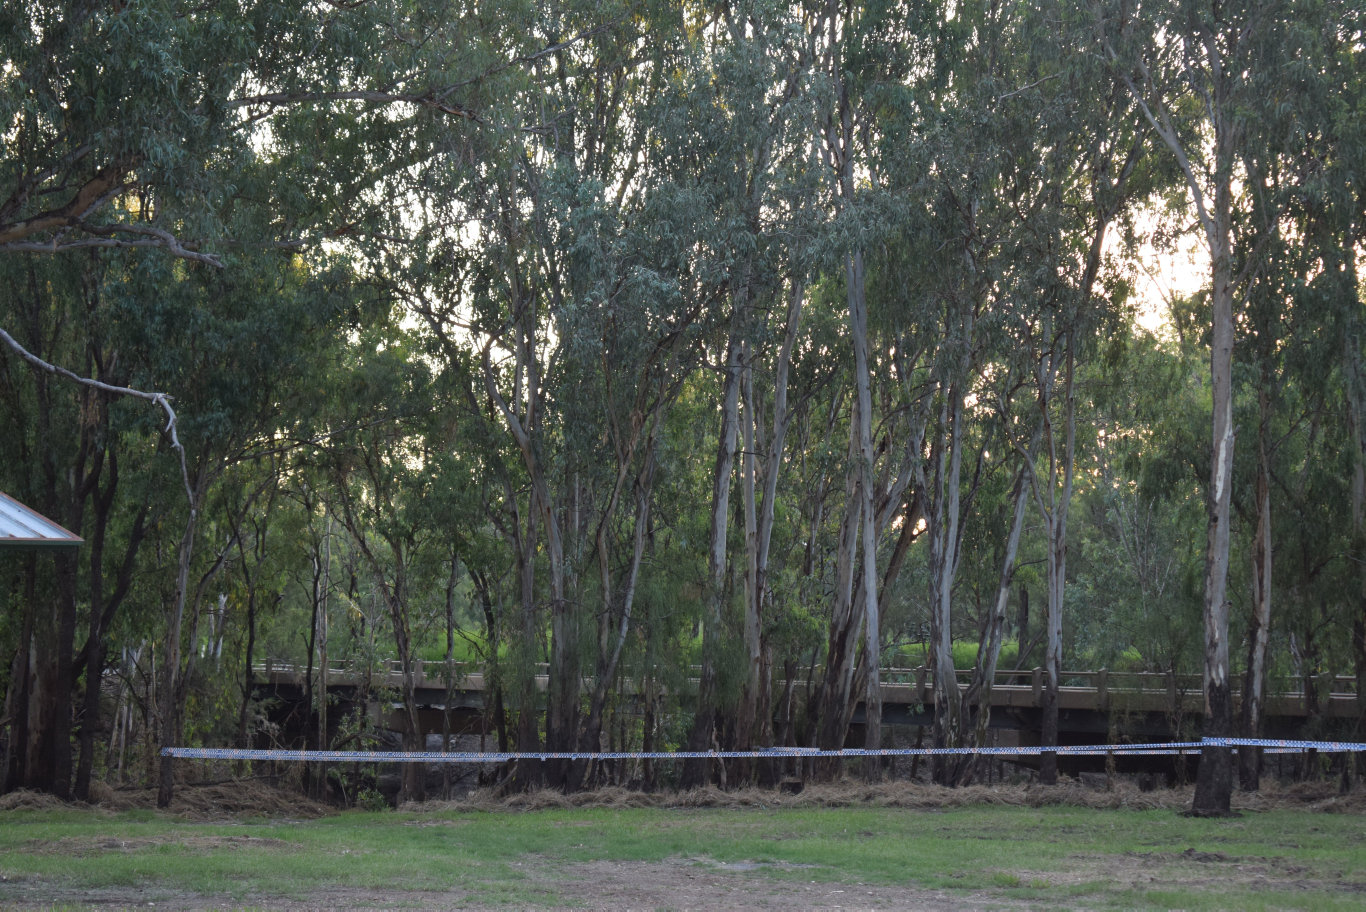 A section of bushland at the Chinchilla Weir has been sectioned off.